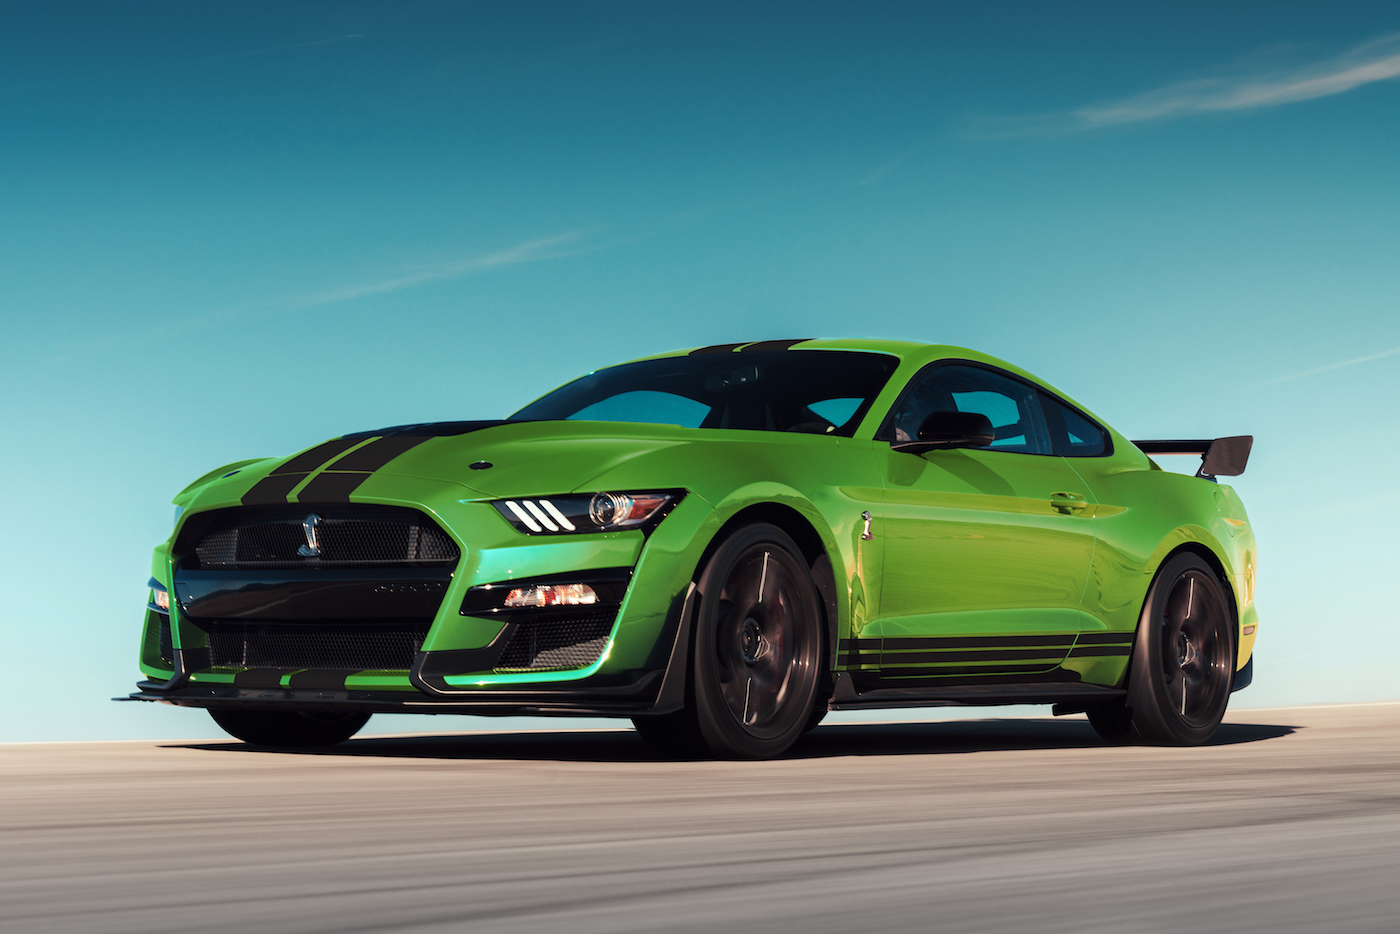 lime grabber mustang gt350 gt500 lineup revealed including gt ford mustang6g advertisement